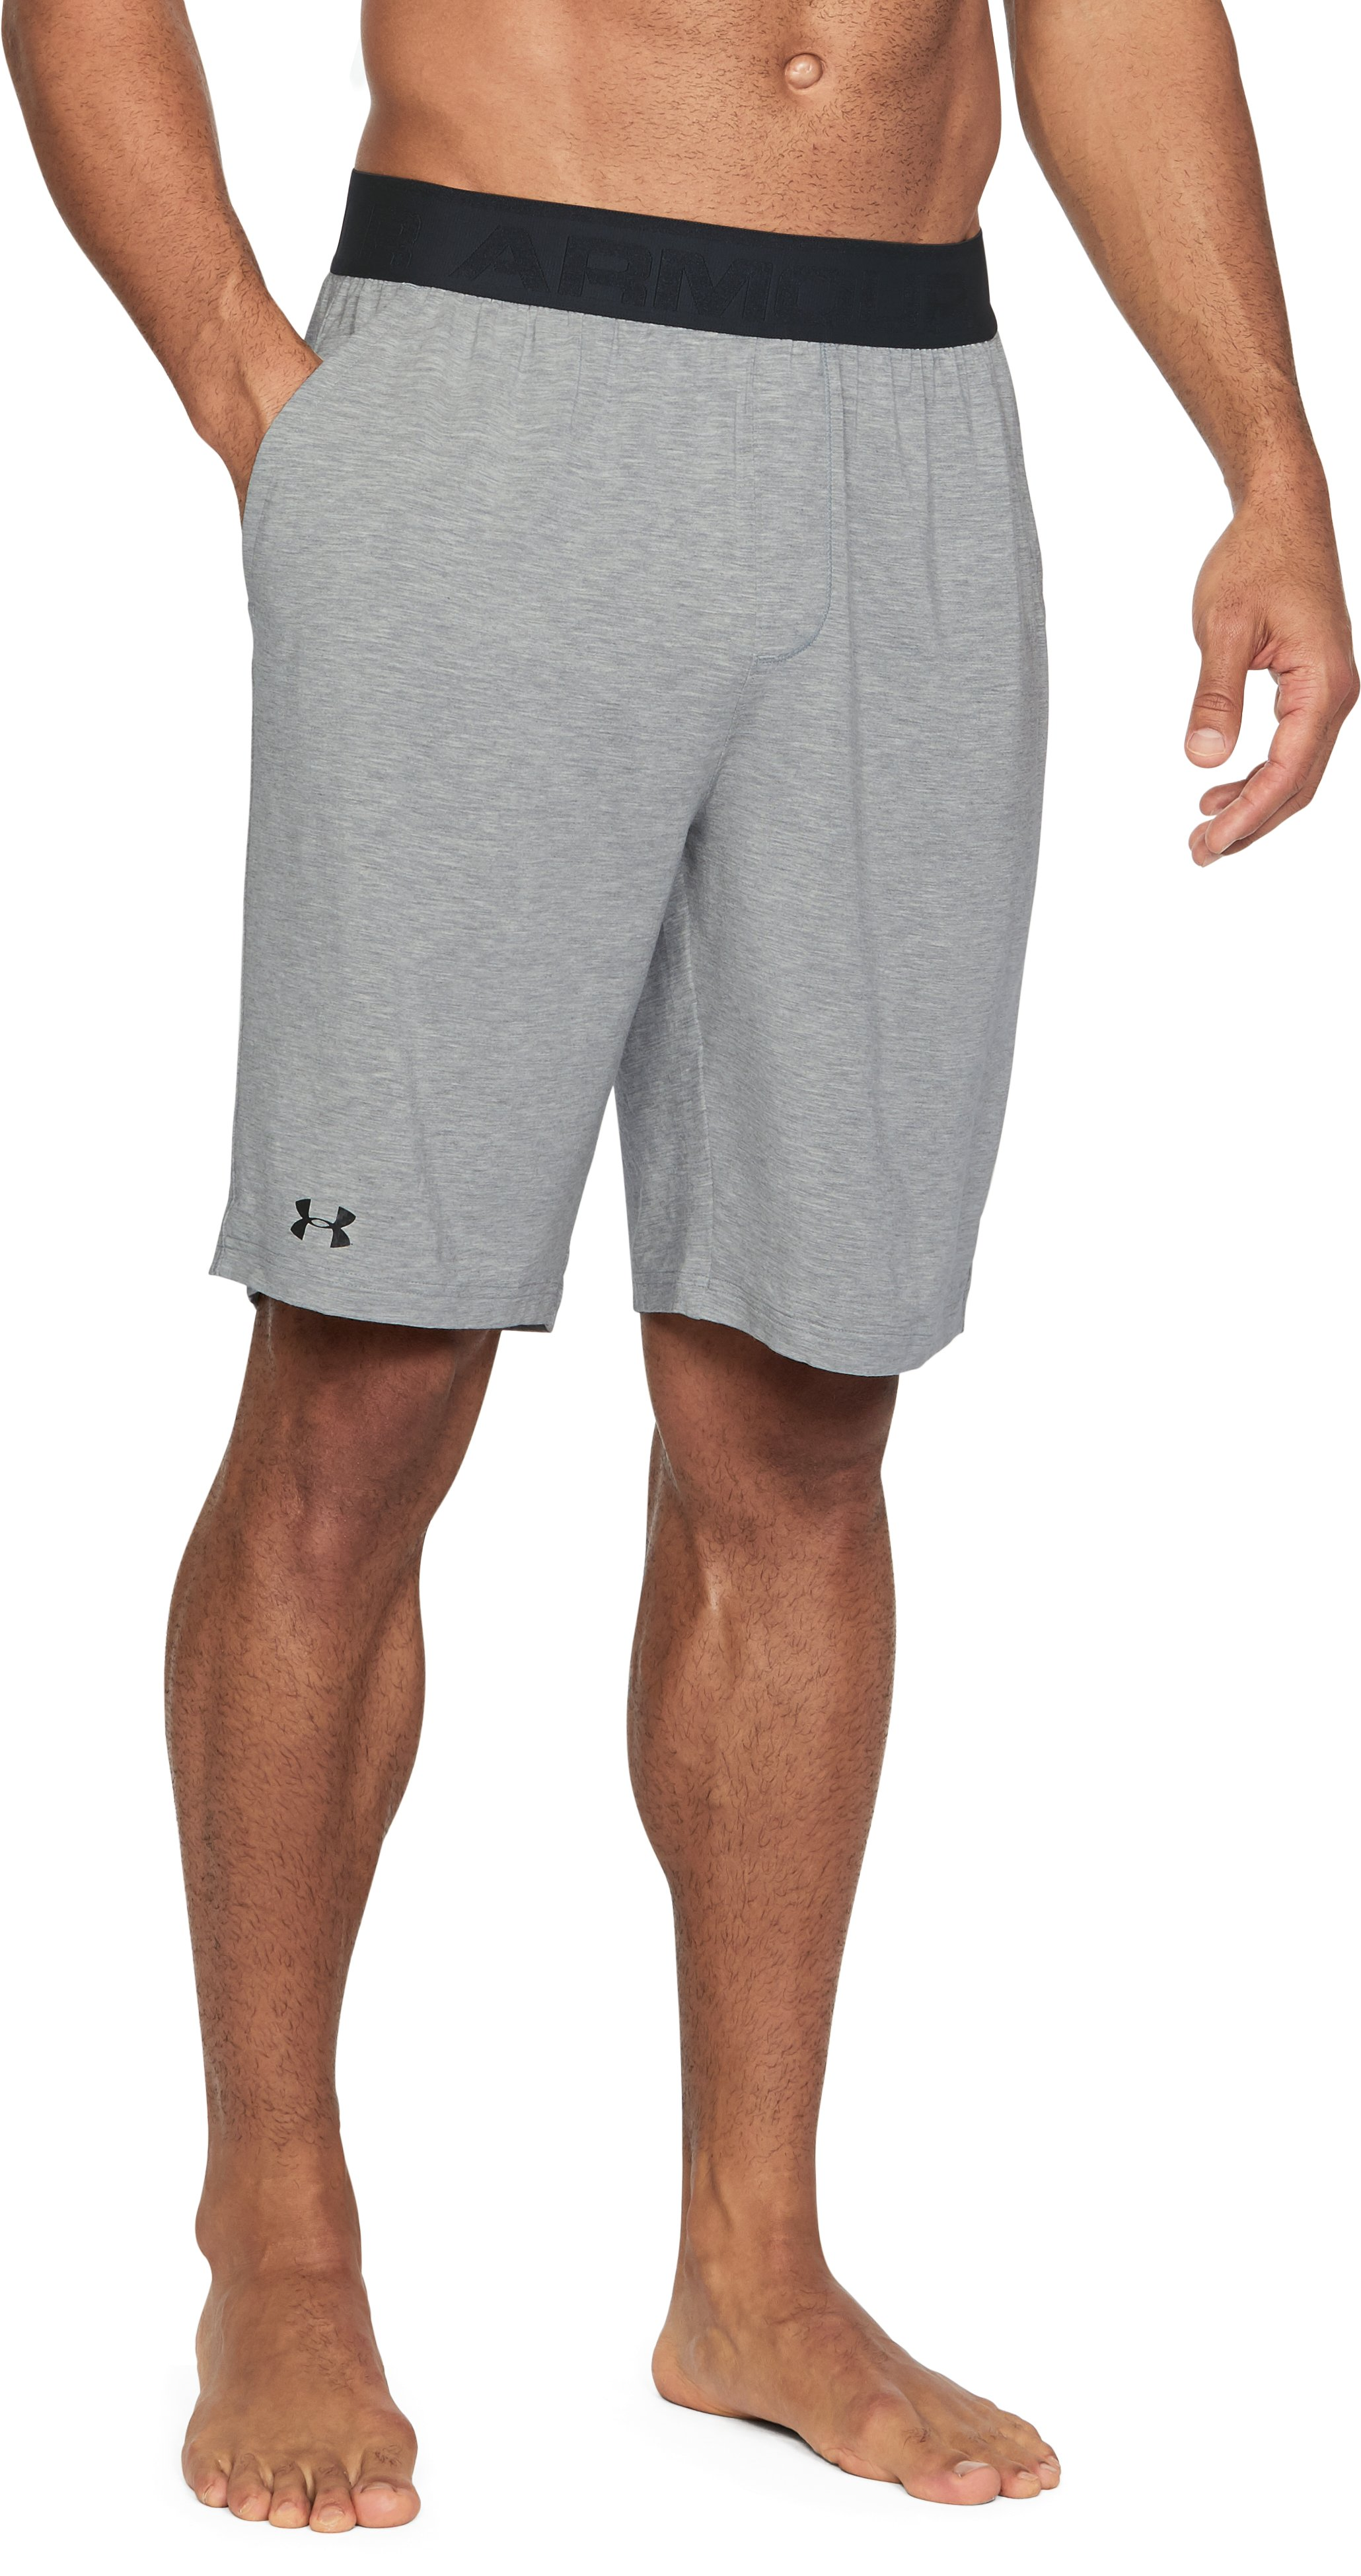 Men's Athlete Recovery Ultra Comfort Sleepwear Shorts, True Gray Heather